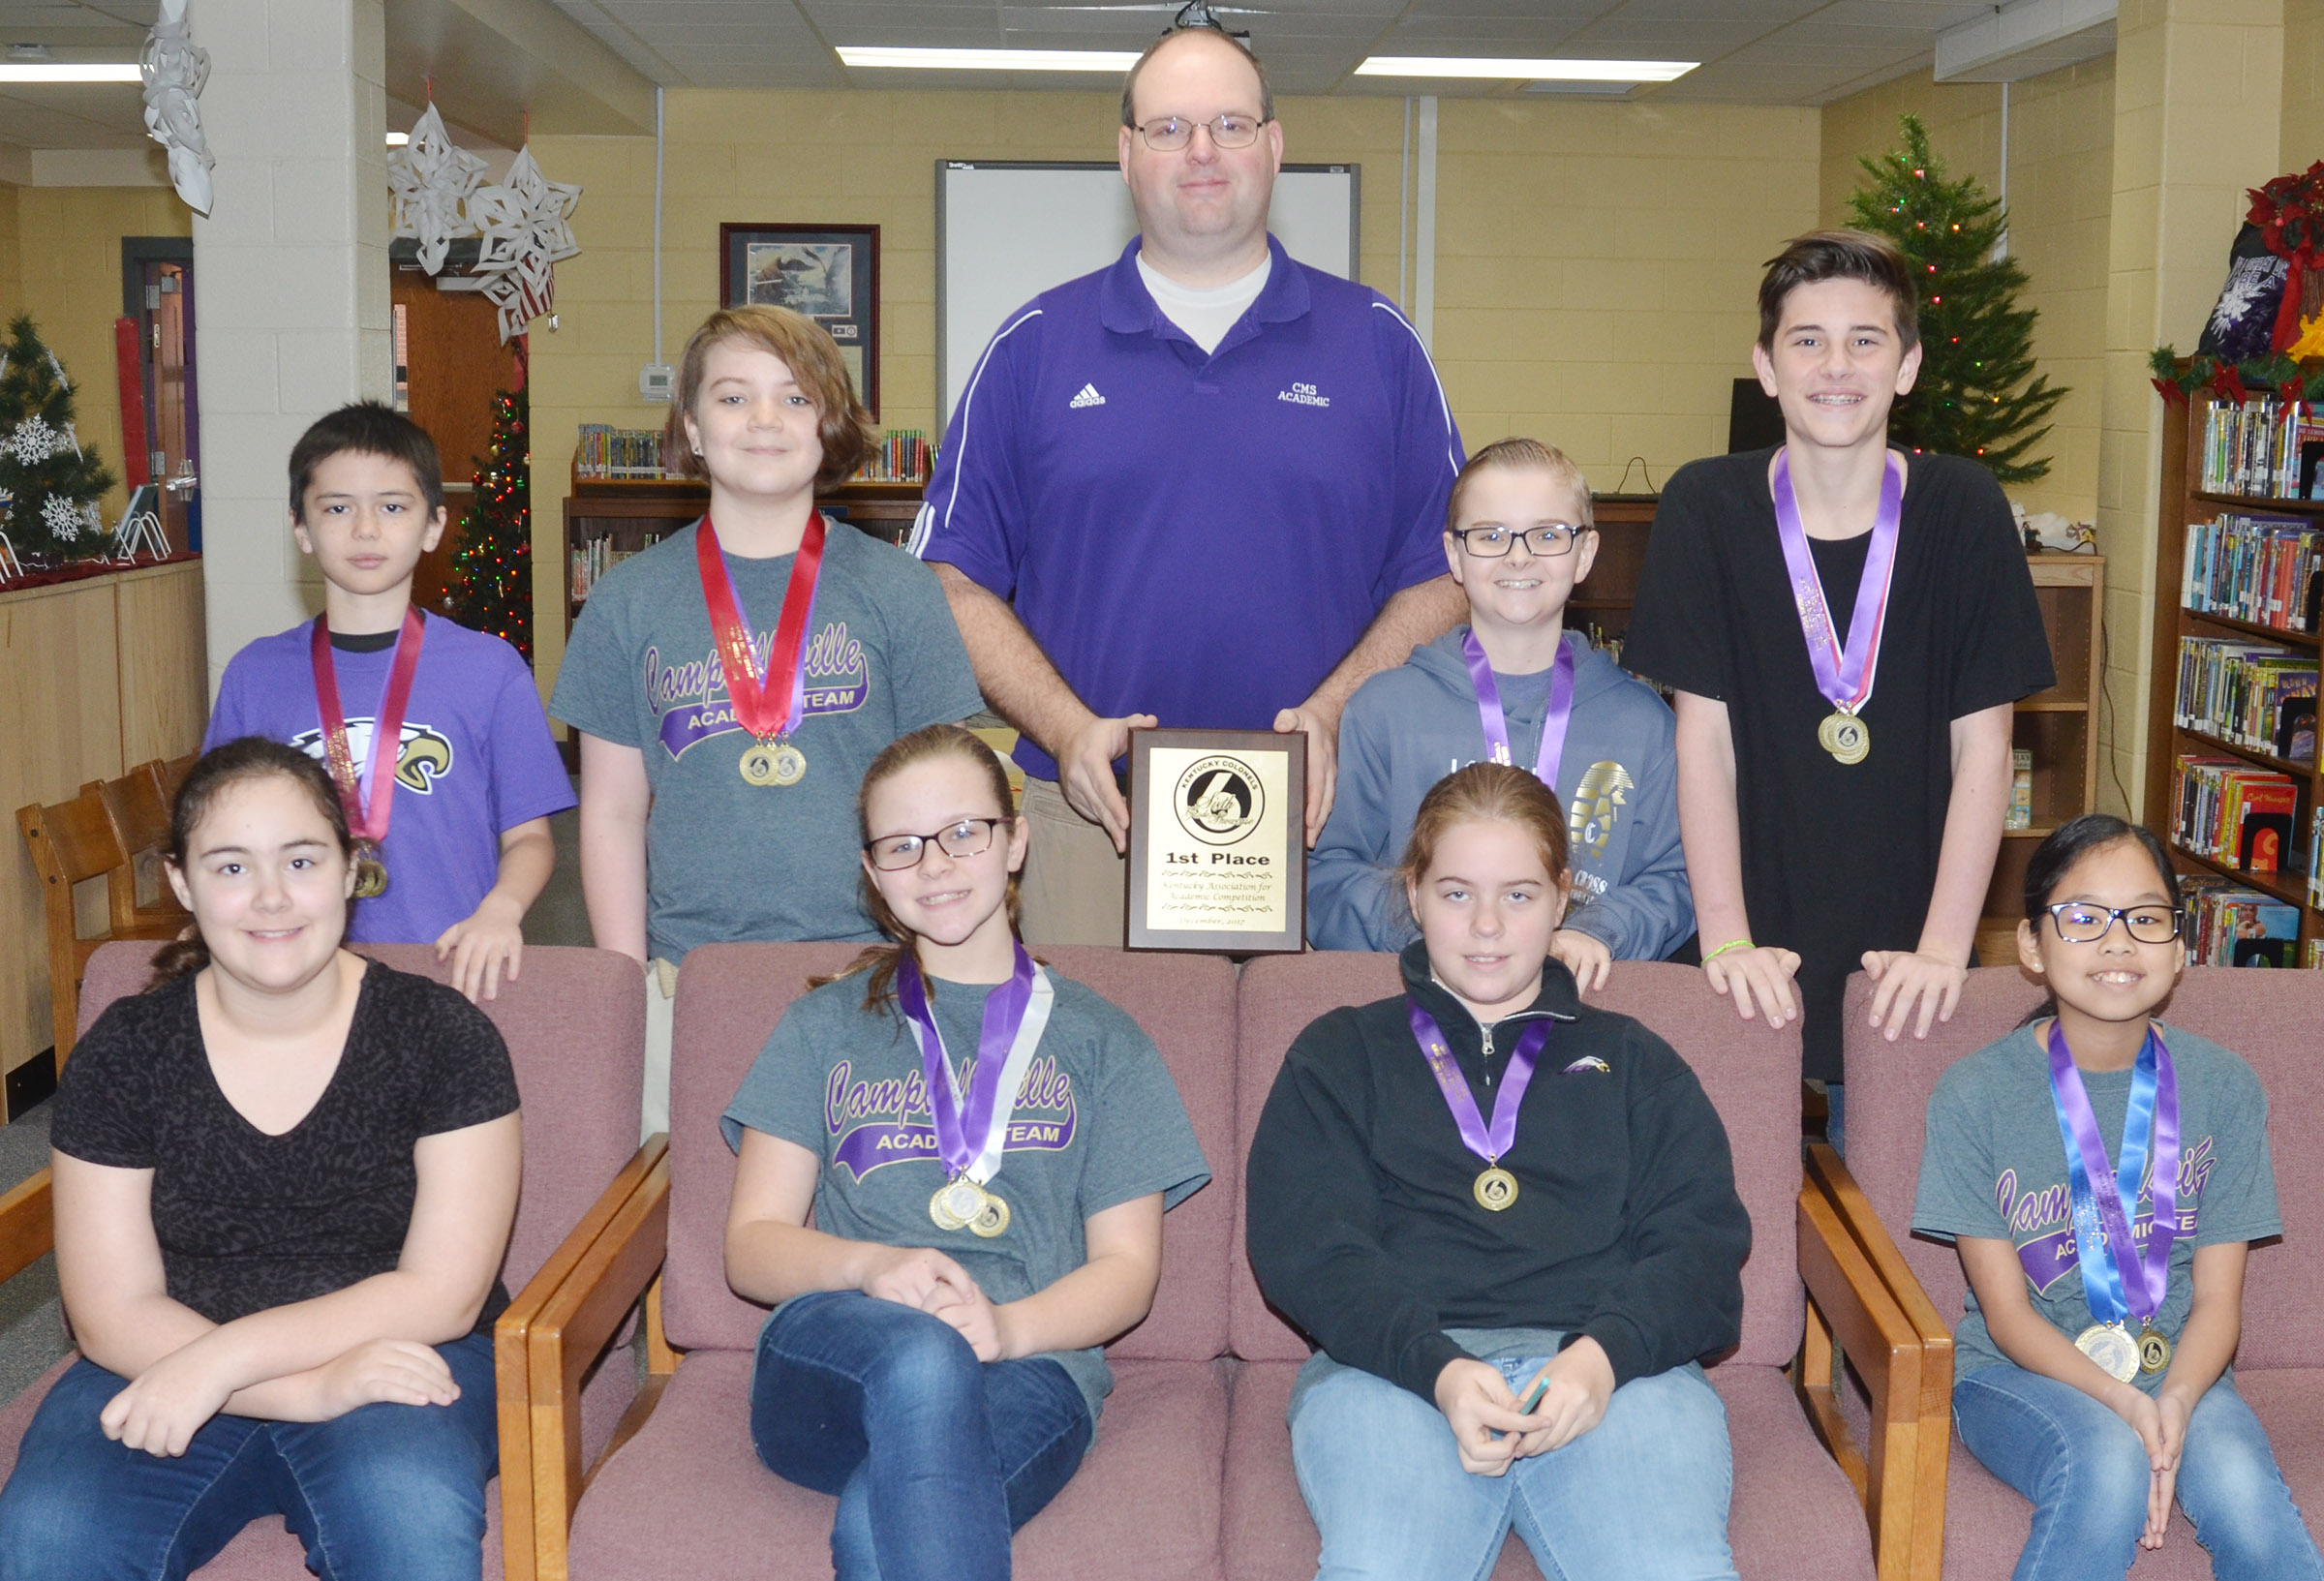 Campbellsville Middle School academic team members won the sixth-grade Showcase competition on Saturday, Dec. 2. From left, front, are academic team members Brianna Dobson, Karlie Cox, Layla Steen and Angelica Seng. Back, Isaac Billeter, Kayden Birdwell, coach Steven Gumm, Caleb Holt and Isaac Garrison.